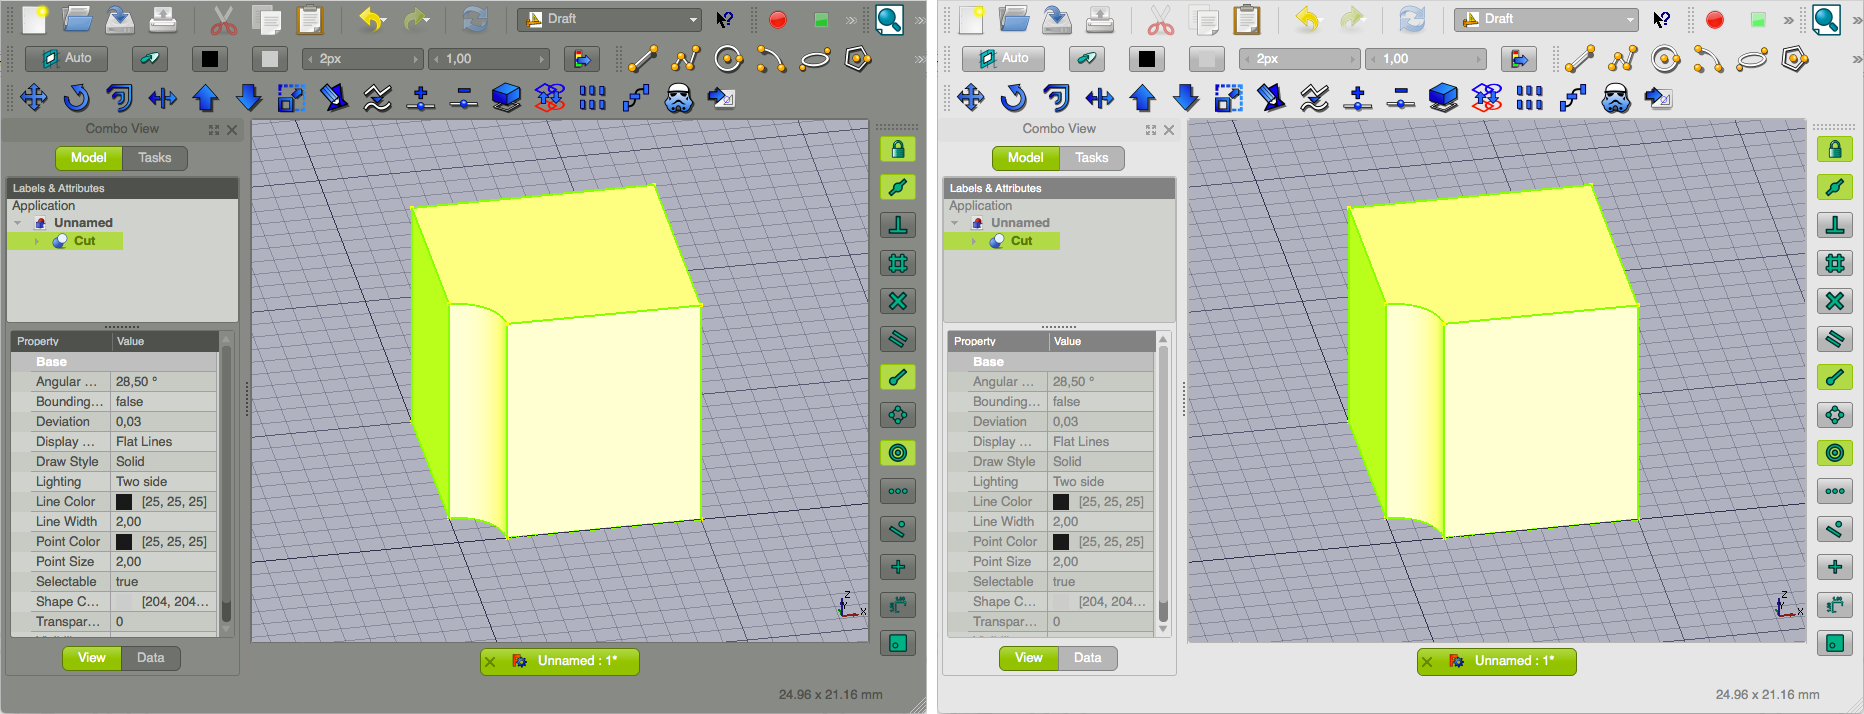 freecad_stylesheets-green.png